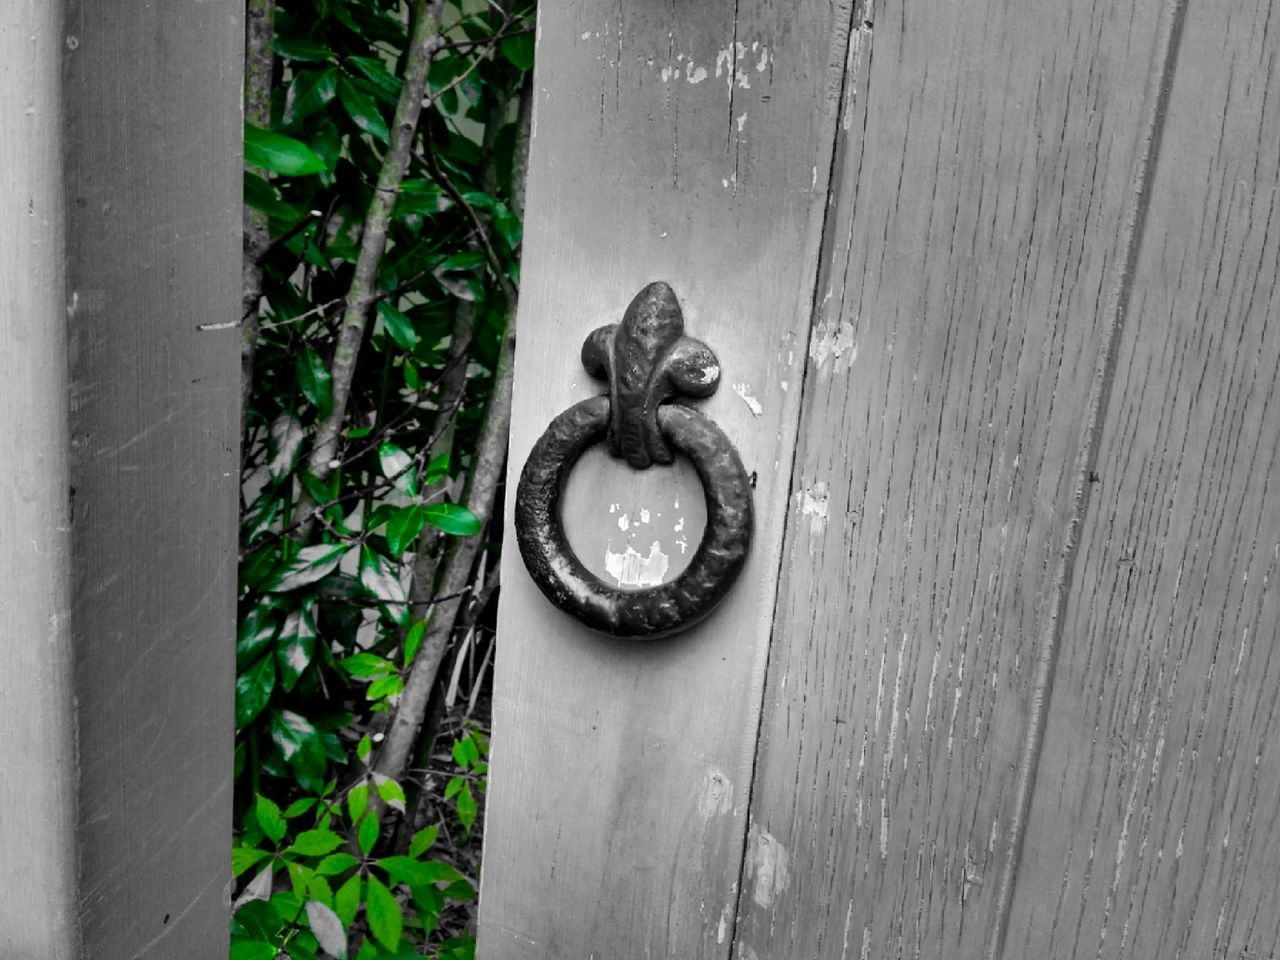 Knock knock... Architecture Hedge Colour Image Showcase March Formal Garden Outdoor Photography Colorsplash Wooden Structure Gate Doorway Green No People Vertical Walls My Point Of View Rear View New Zealand Hamilton NZ Close-up Autumn 2016 Sublime Edits Iron - Metal Knocker Exterior Pattern, Texture, Shape And Form